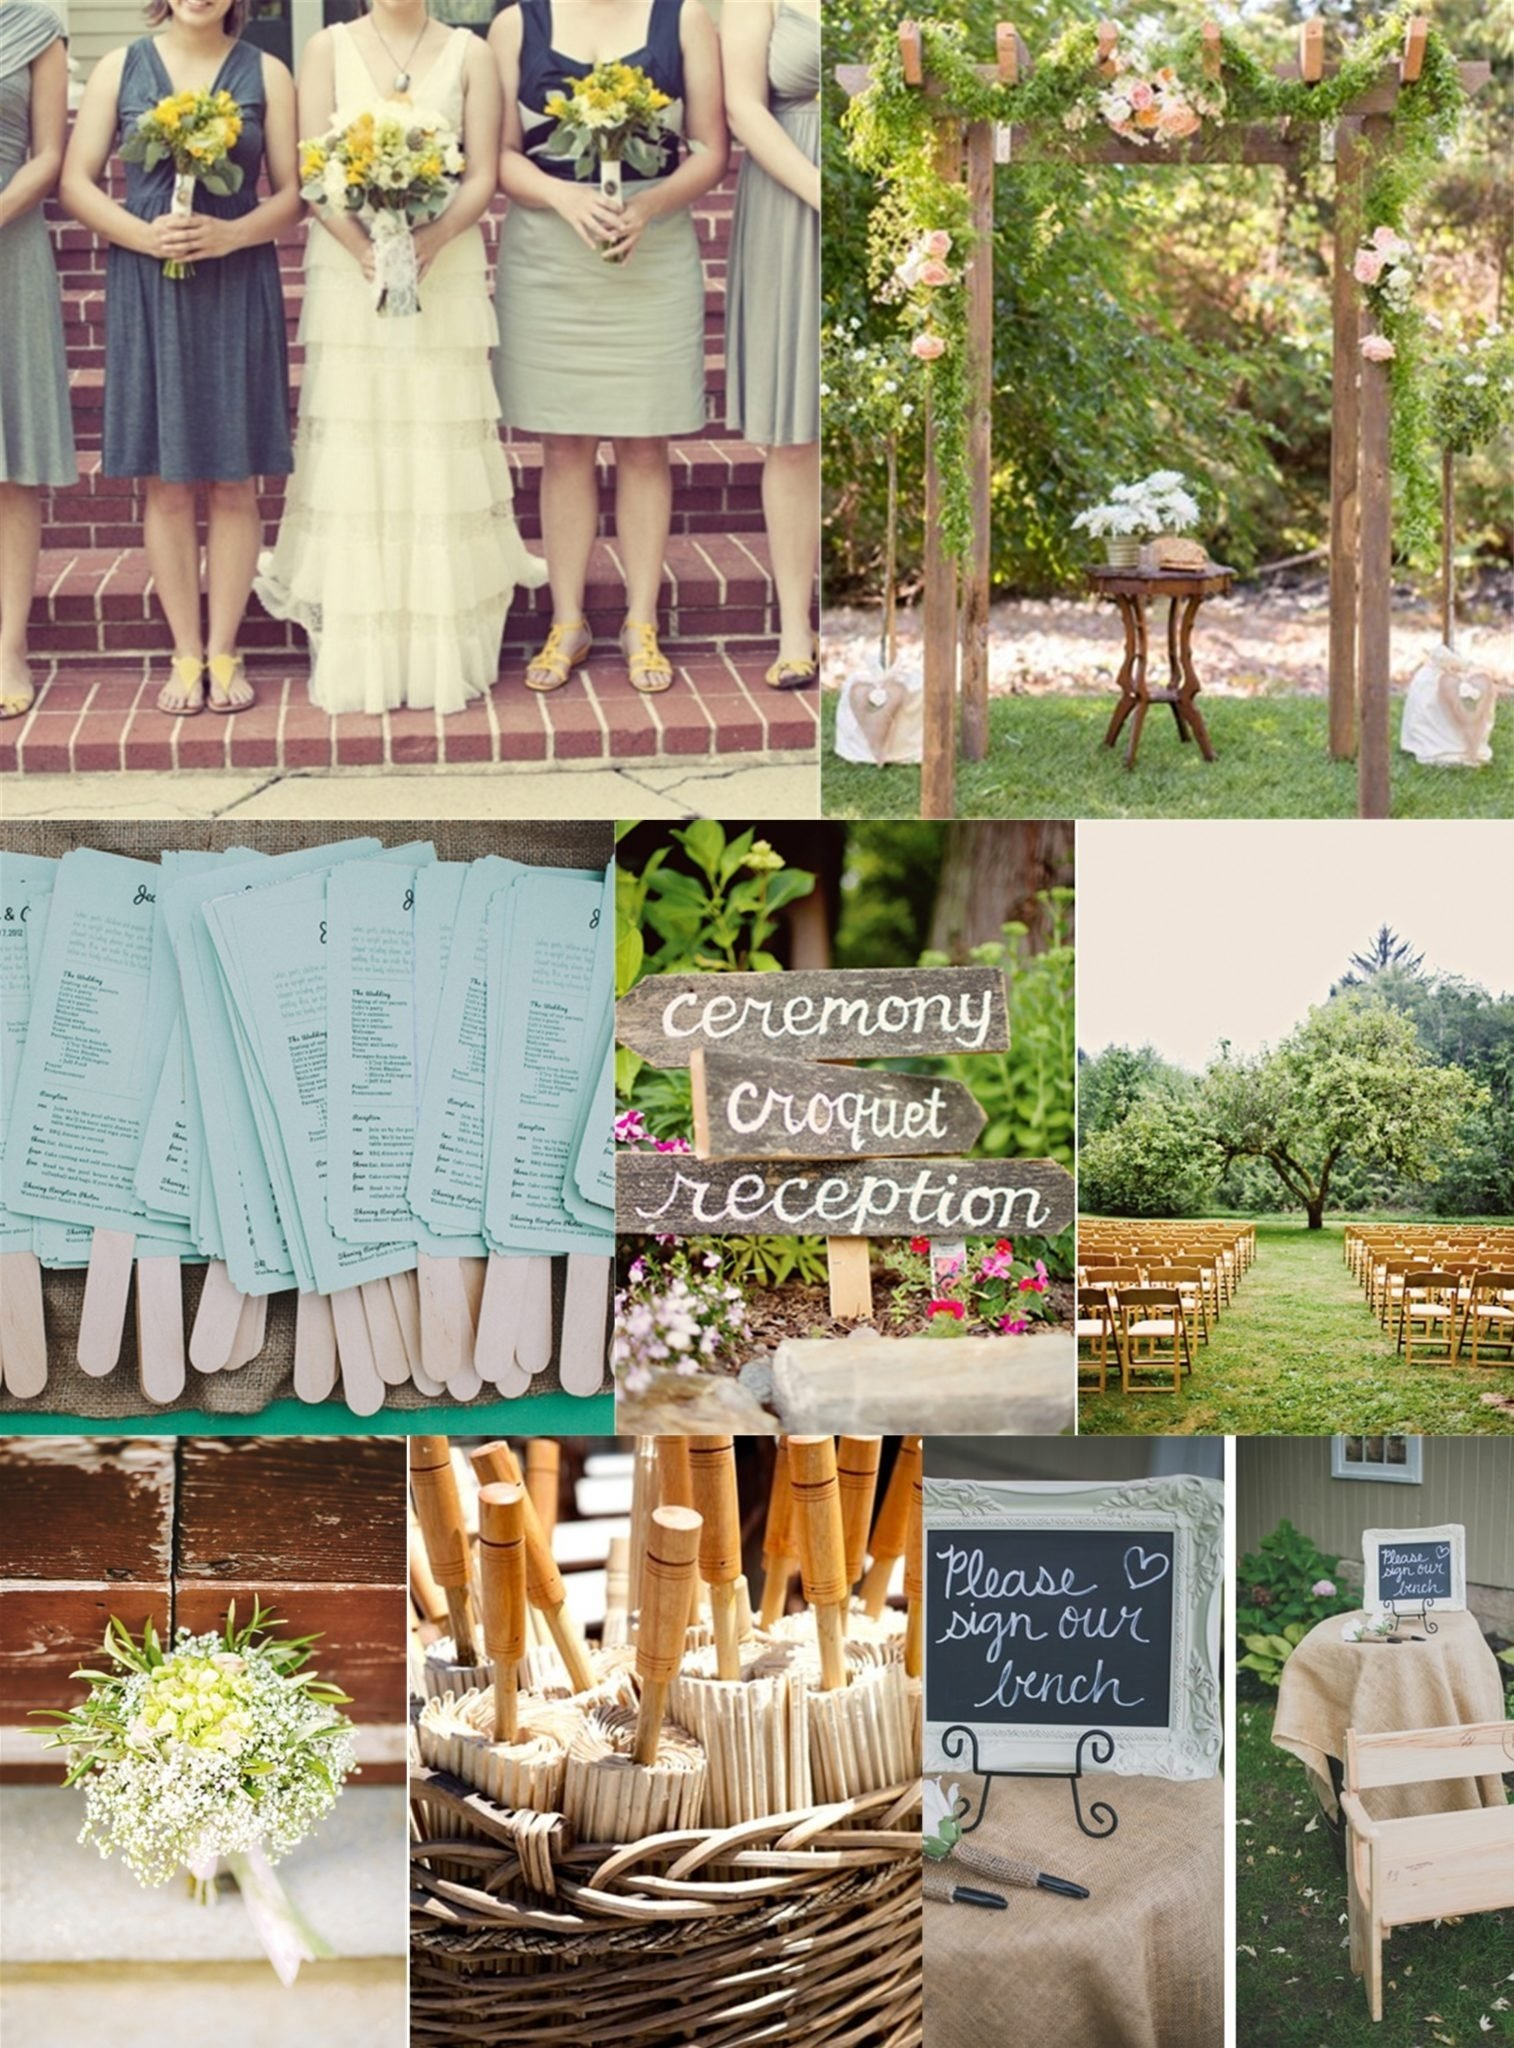 10 Fantastic Small Backyard Wedding Ideas On A Budget essential guide to a backyard wedding on a budget 2